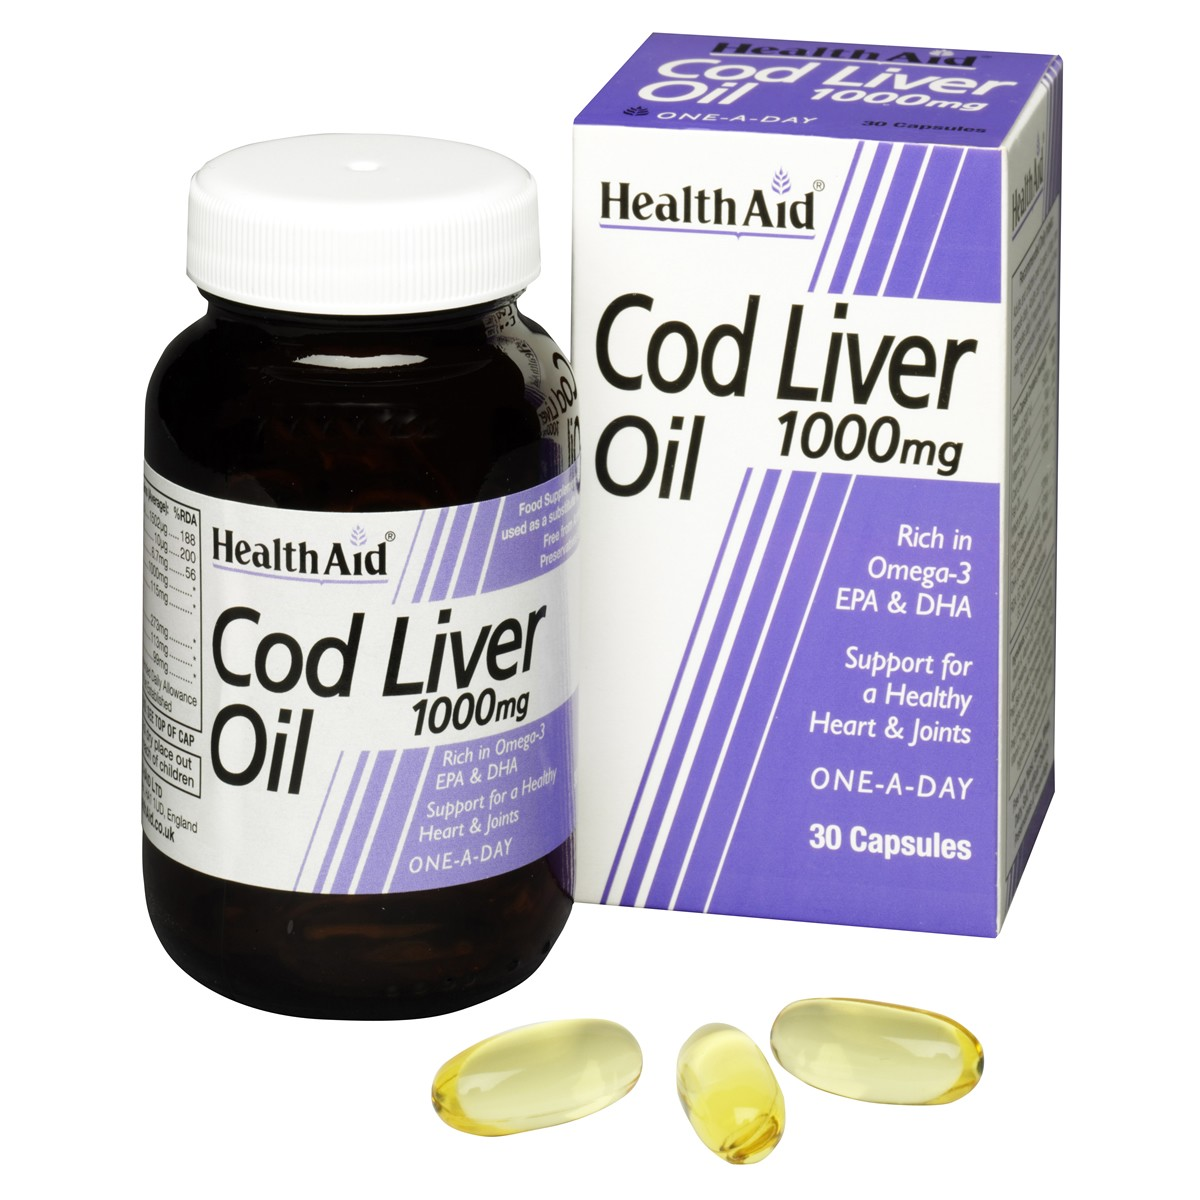 HealthAid Cod Liver Oil 1000mg Vegicaps